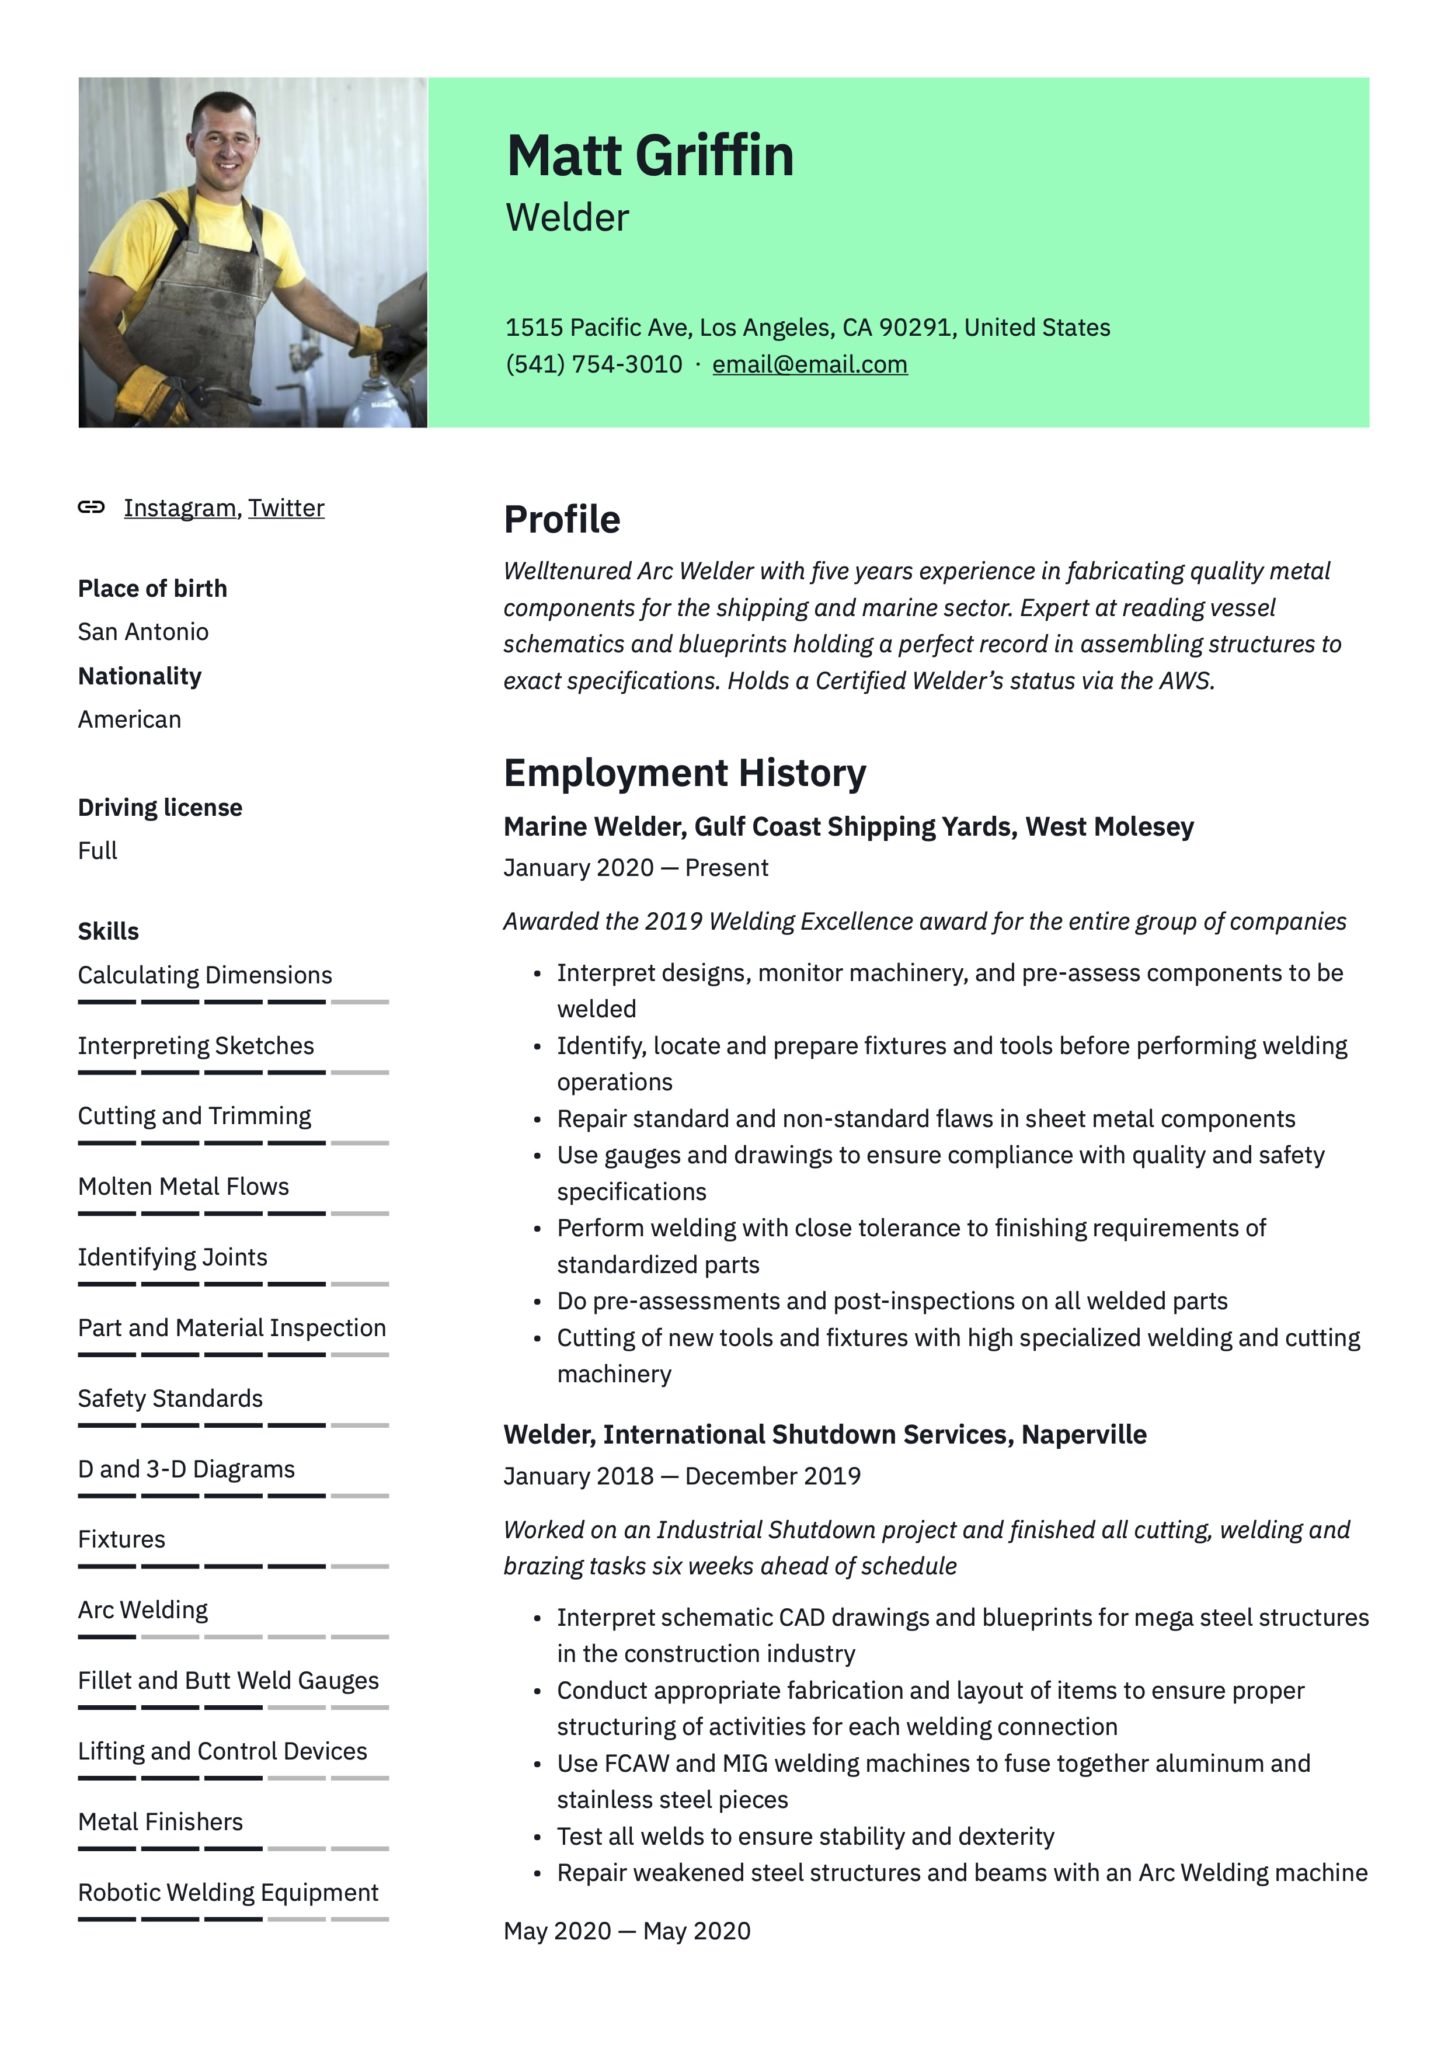 free welder resume examples guide pdf samples scaled sap basis template ready set have Resume Welder Resume Examples Samples